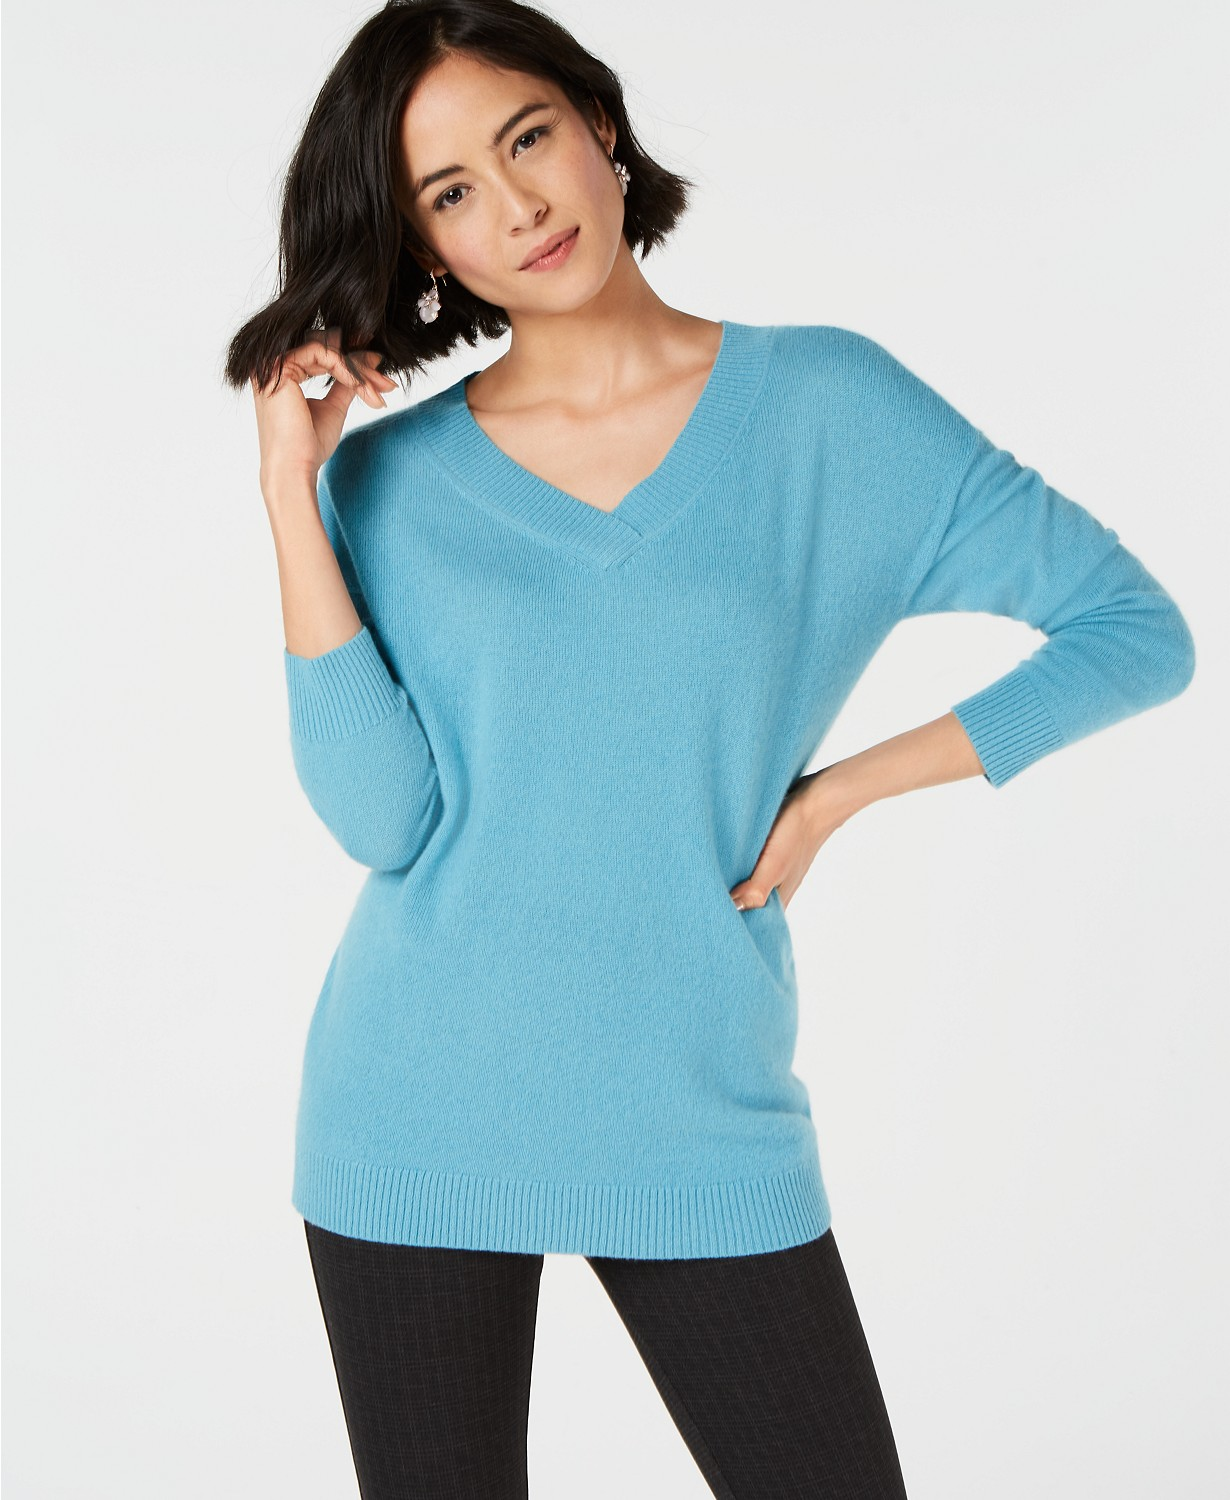 MACYS LIMITED TIME SPECIAL! CHARTER CLUB CASHMERE UP TO 40% OFF!